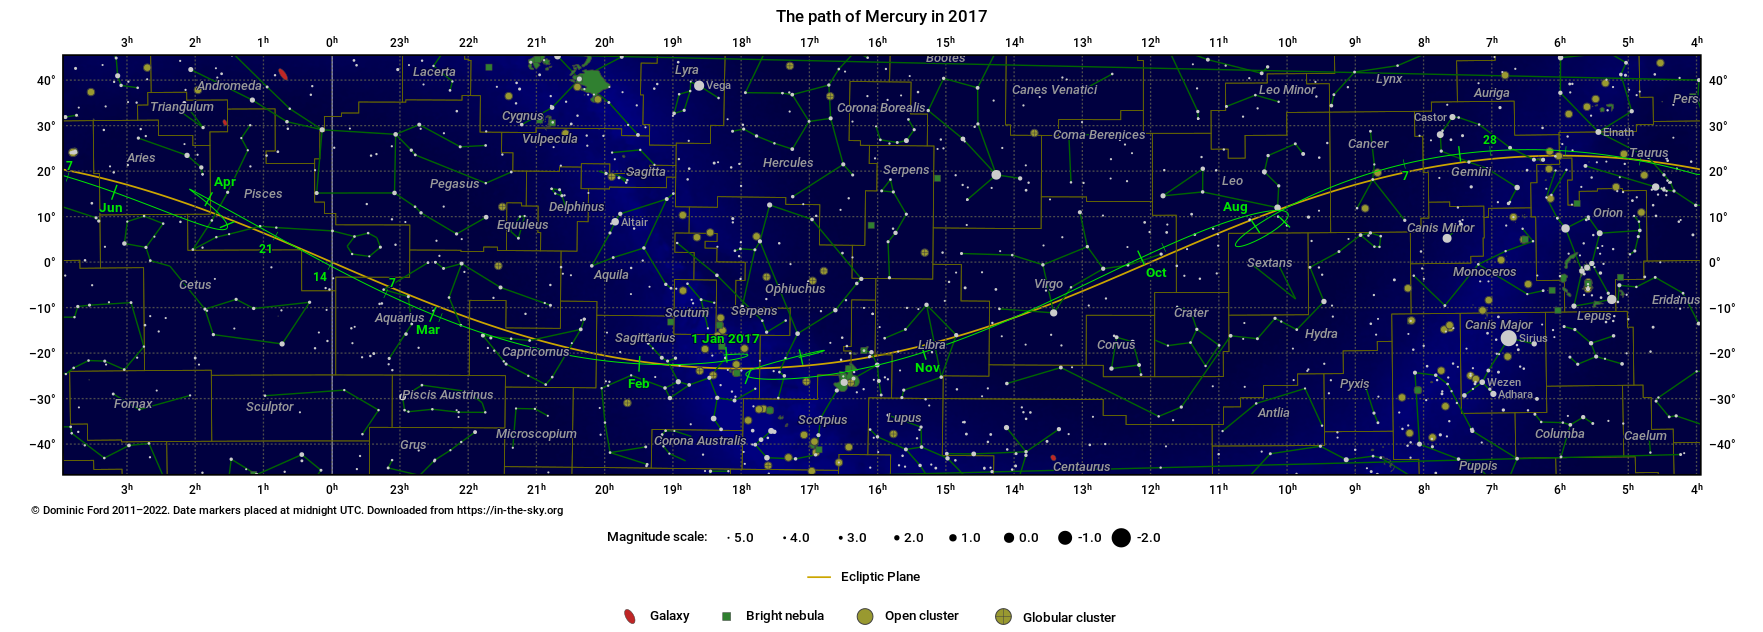 The path traced across the sky by Mercury in 2017